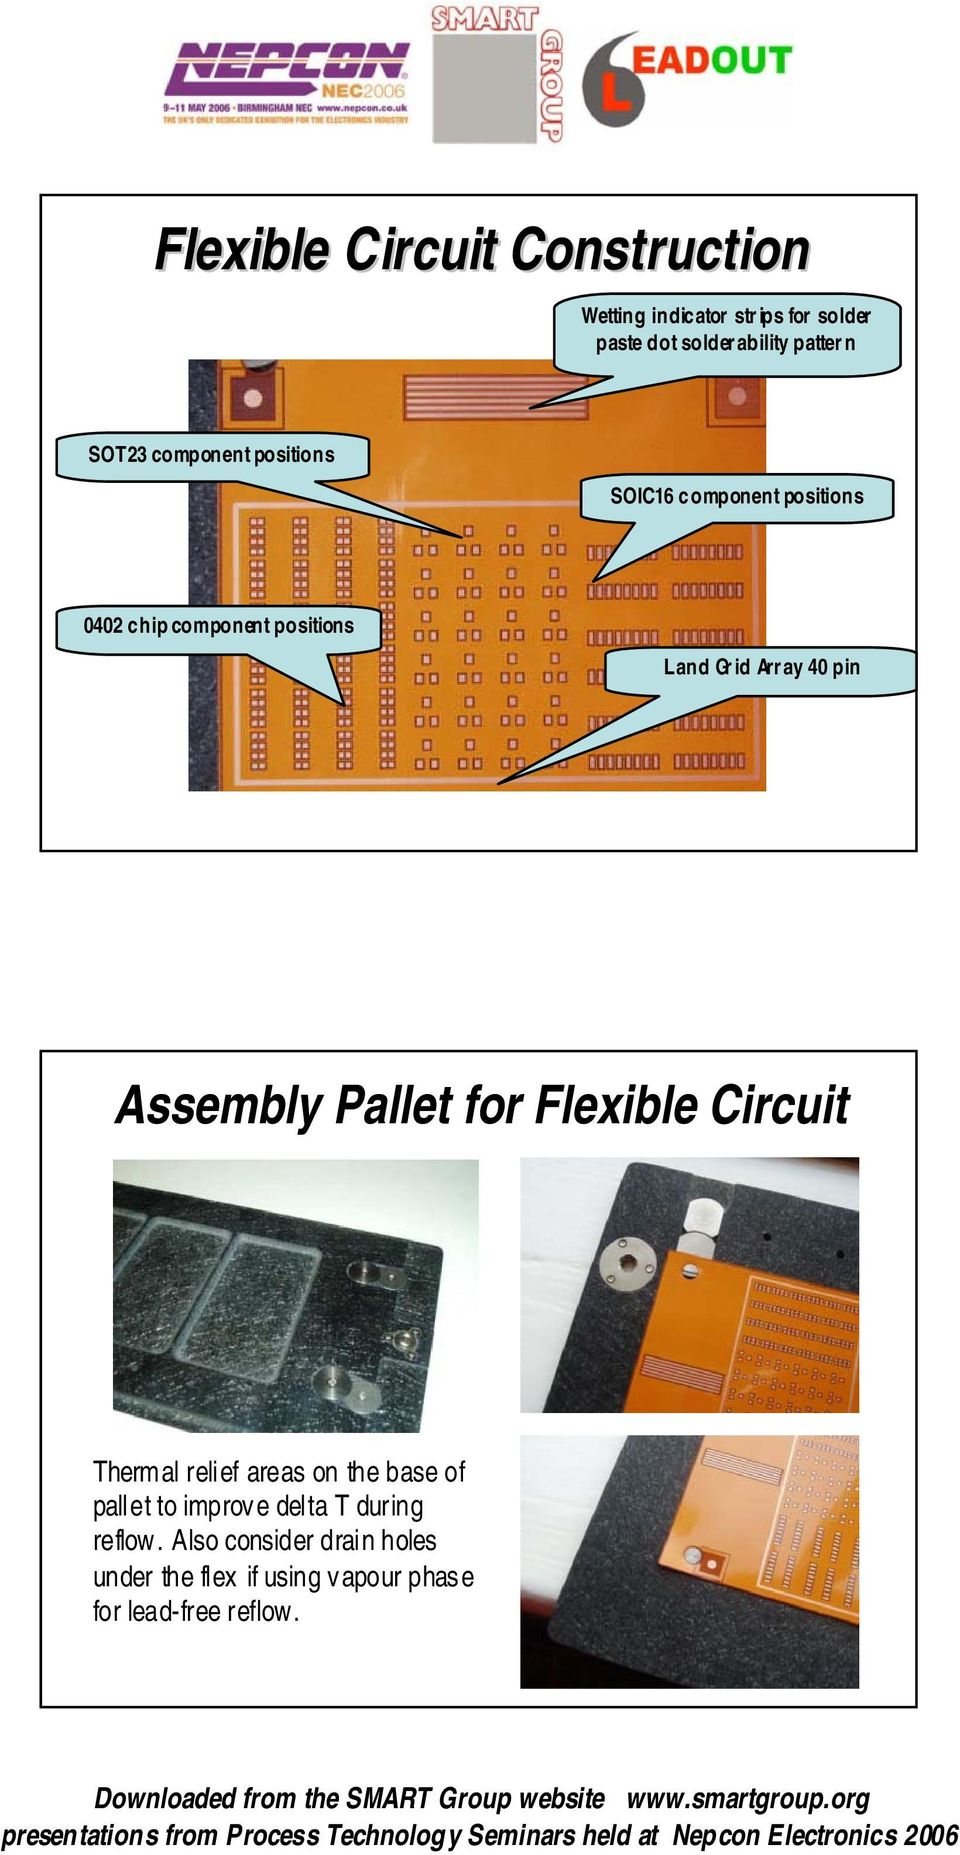 40 pin Assembly Pallet for Flexible Circuit Thermal relief areas on the base of pallet to improve